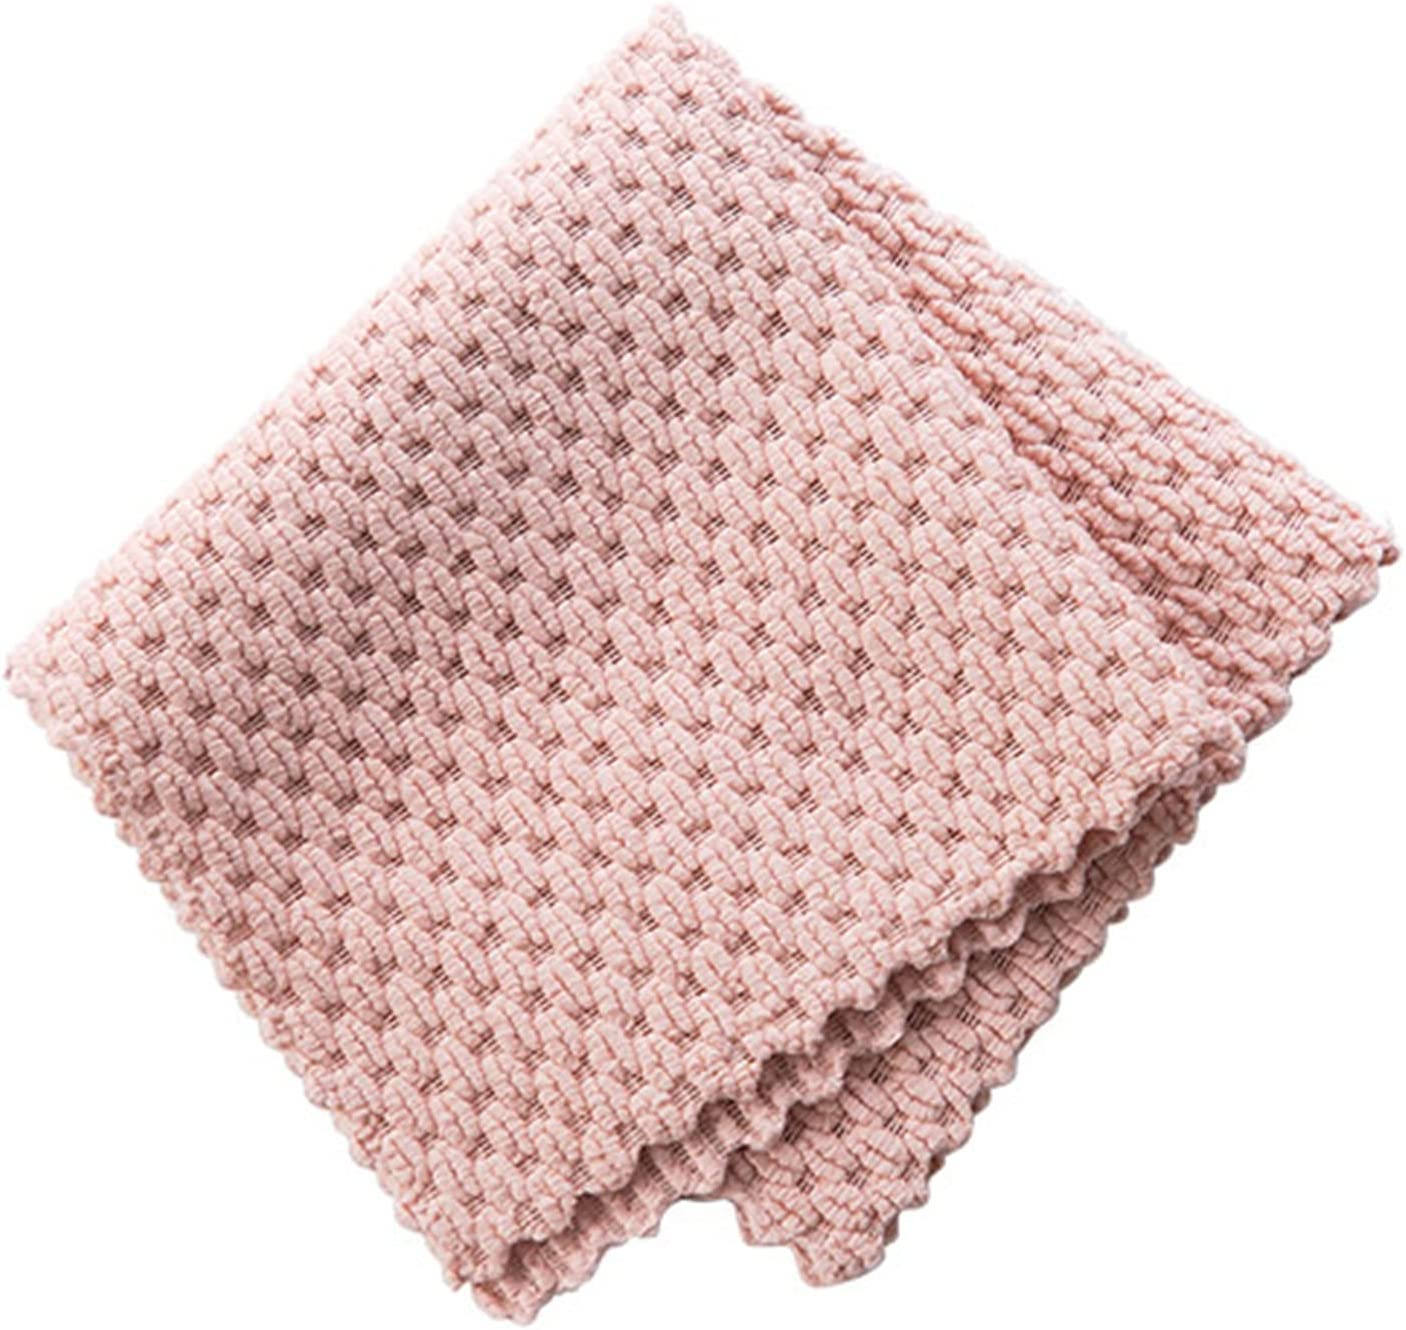 Kitchen towel Anti-grease Wipping In a popularity Efficient Super A Free Shipping New Rags